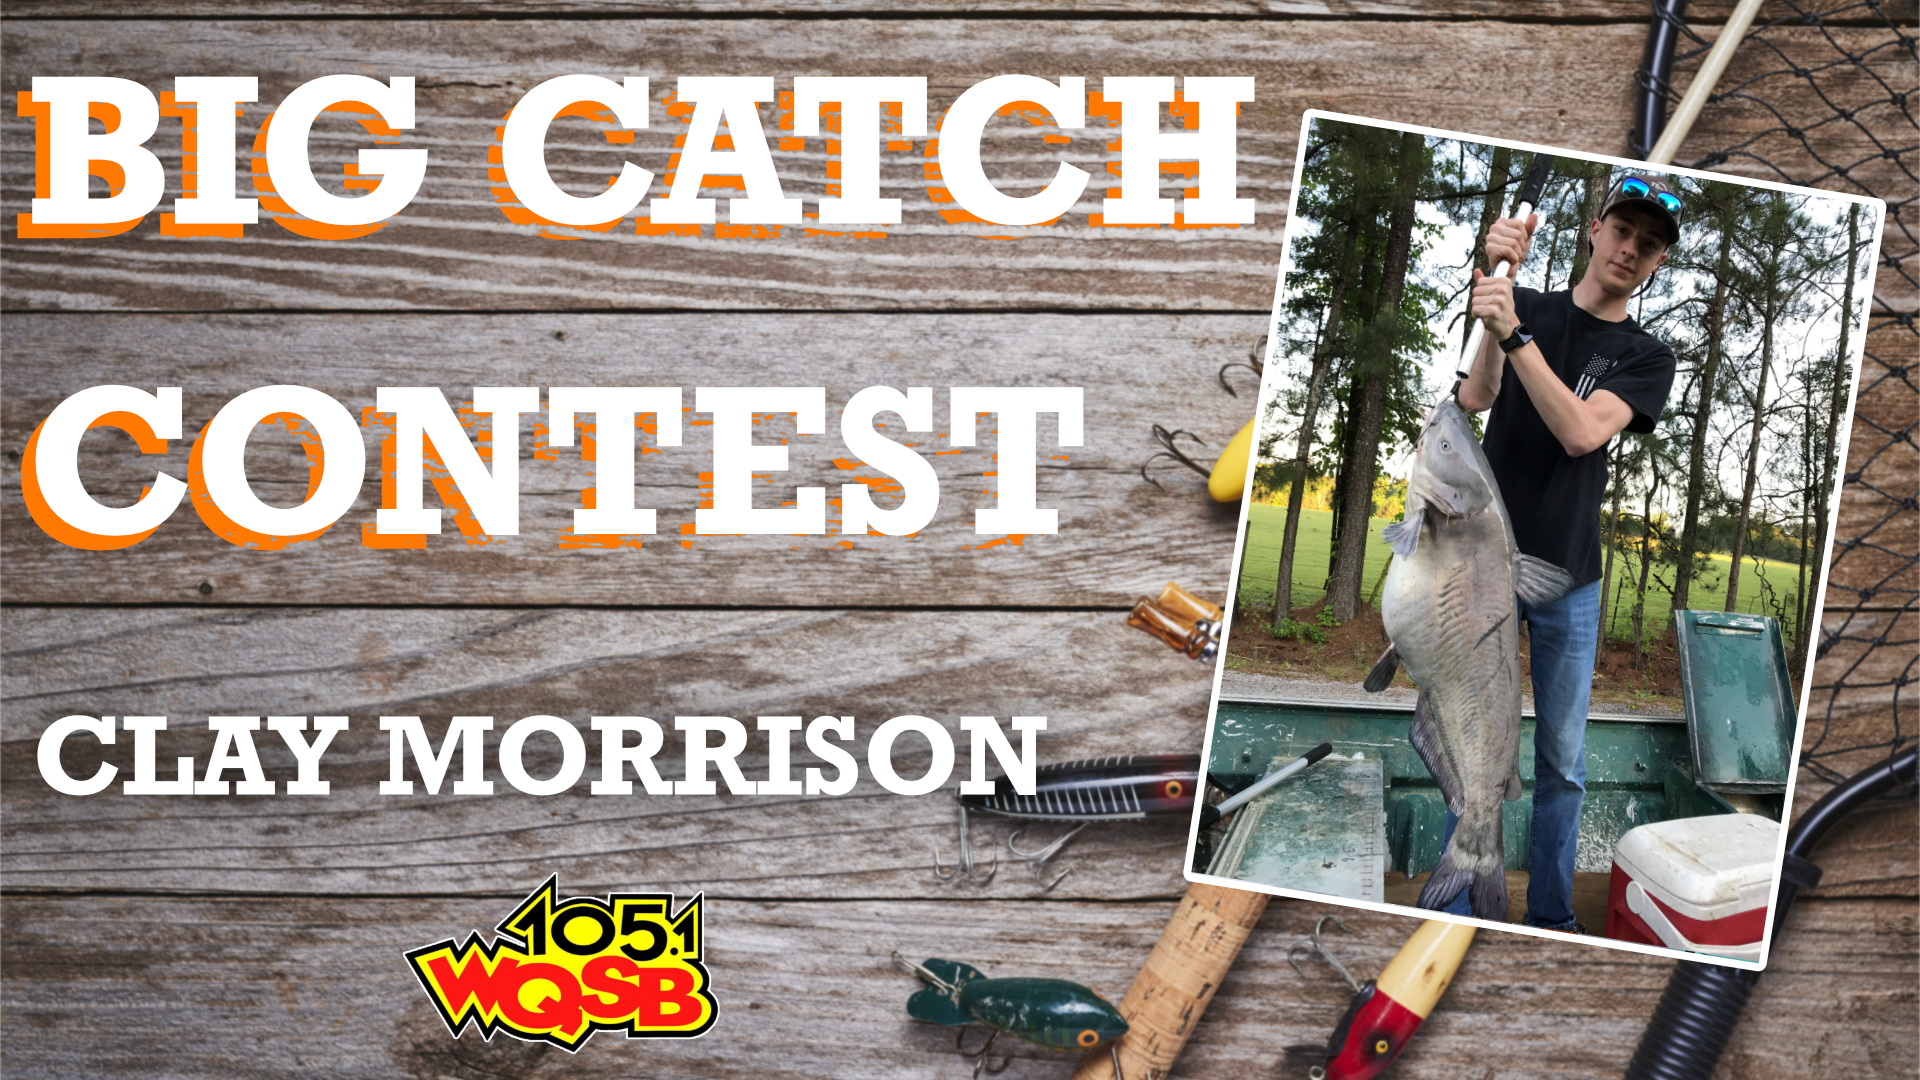 WQSB Big Catch Contest 2021 Winner July 7th, 2021